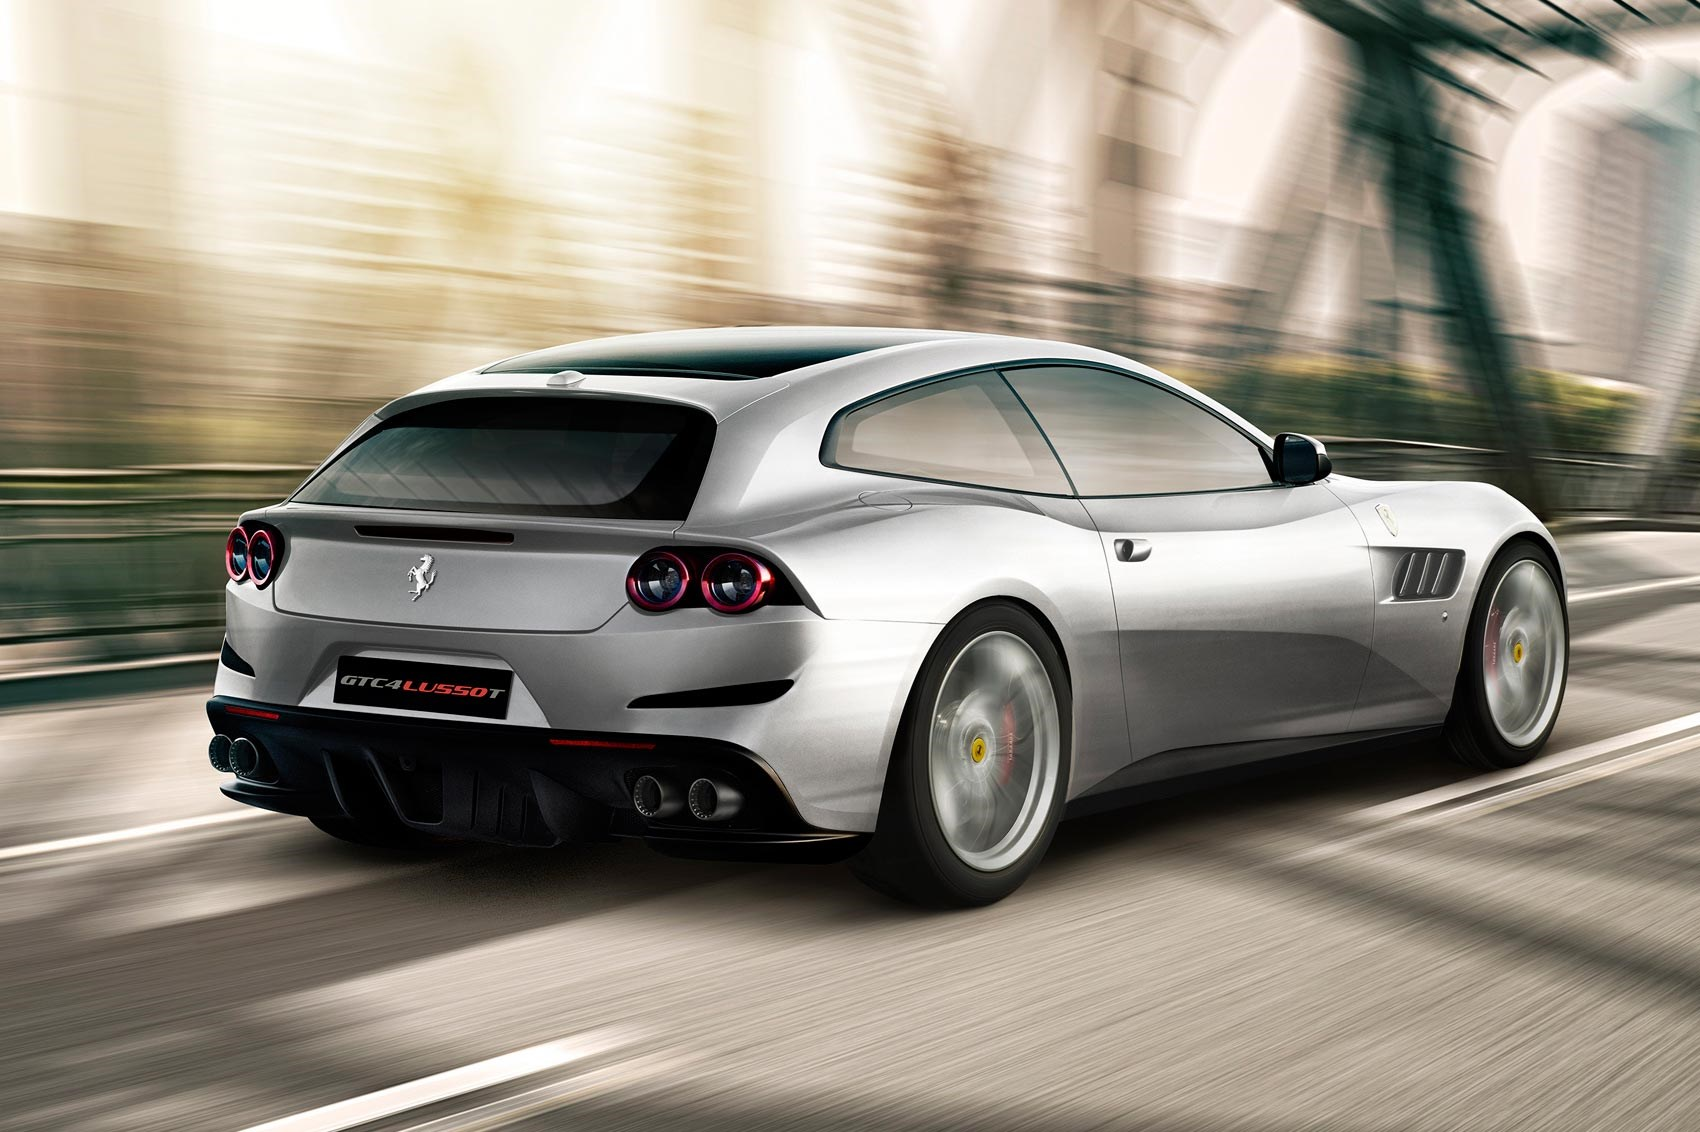 It S A V8 Mate New Ferrari Gtc4 Lusso T Unveiled By Car